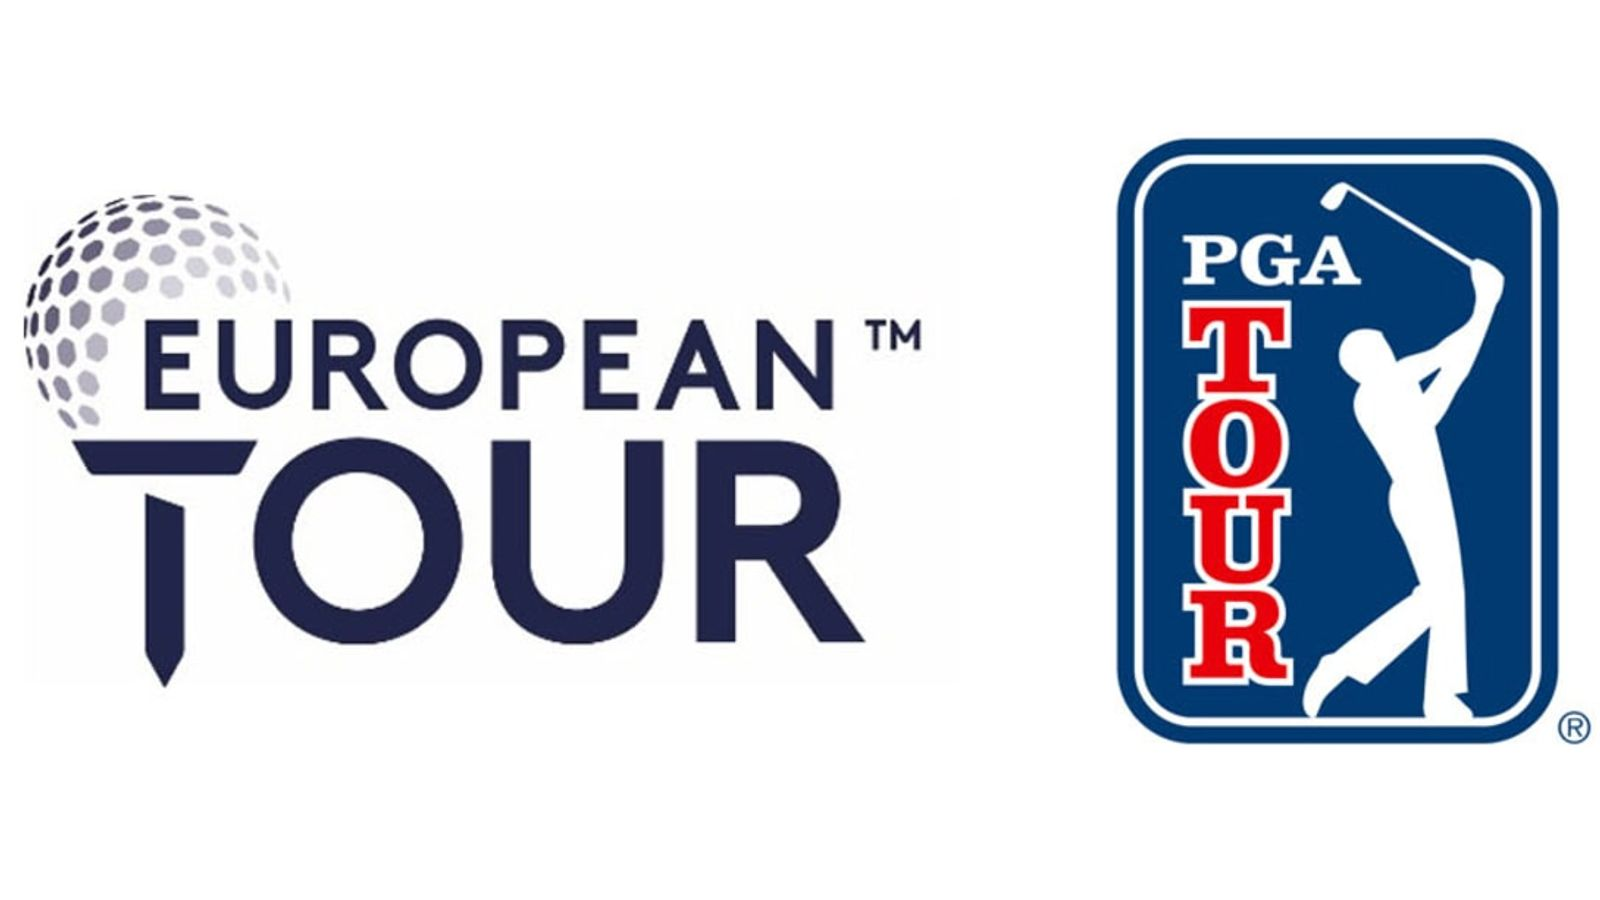 European Tour and PGA Tour announce new historic partnership - Sky Sports